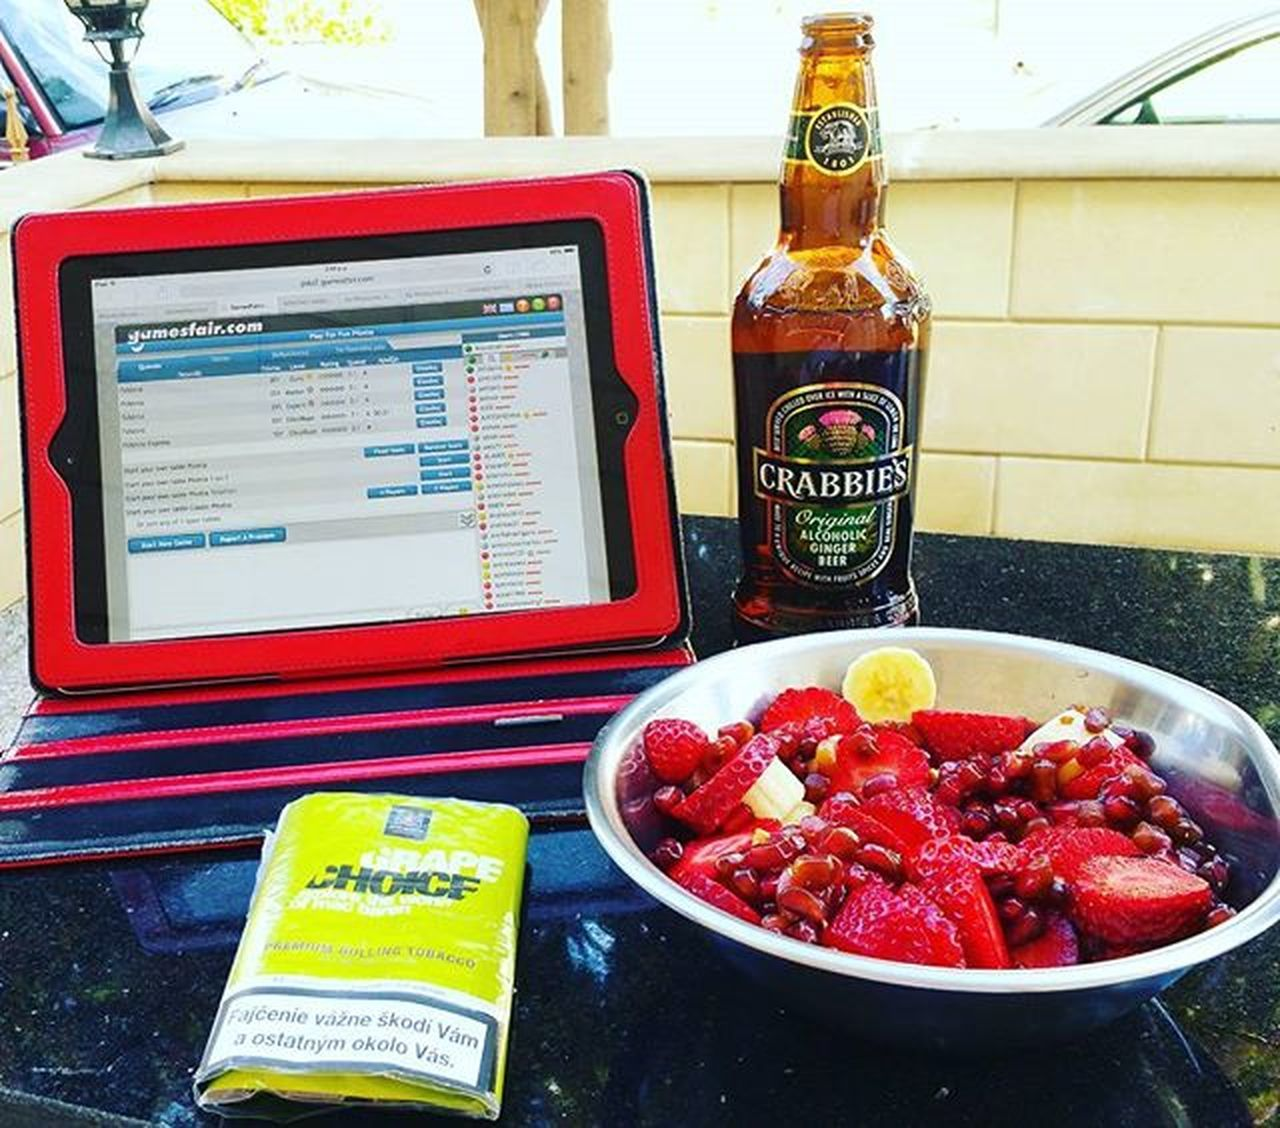 Cyprus Holidaymood Gingerbeer Pomegranate Strawberry Banana Cheers Pilotta Grapetabacco Happylife Crabbies